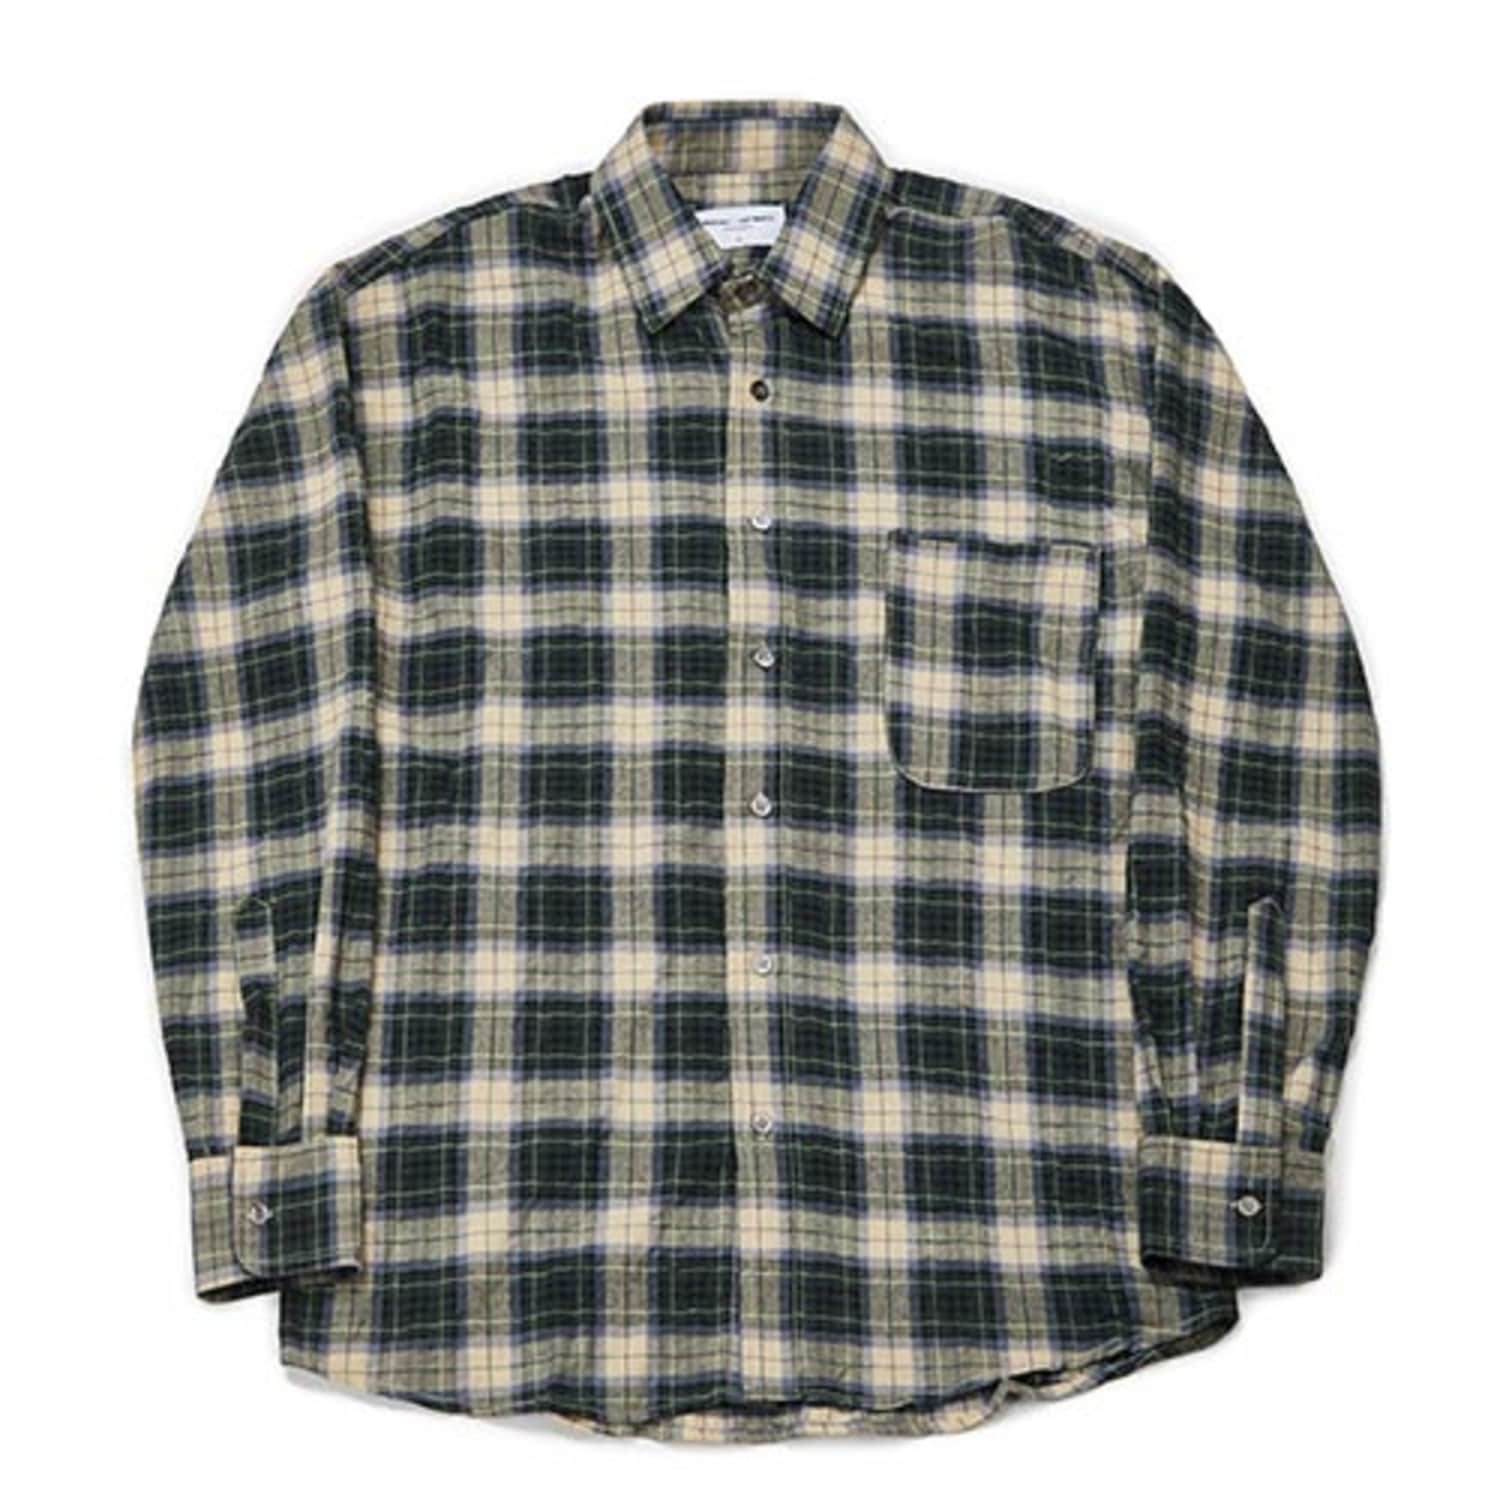 Semiover Herringbone Check Shirts (Green)